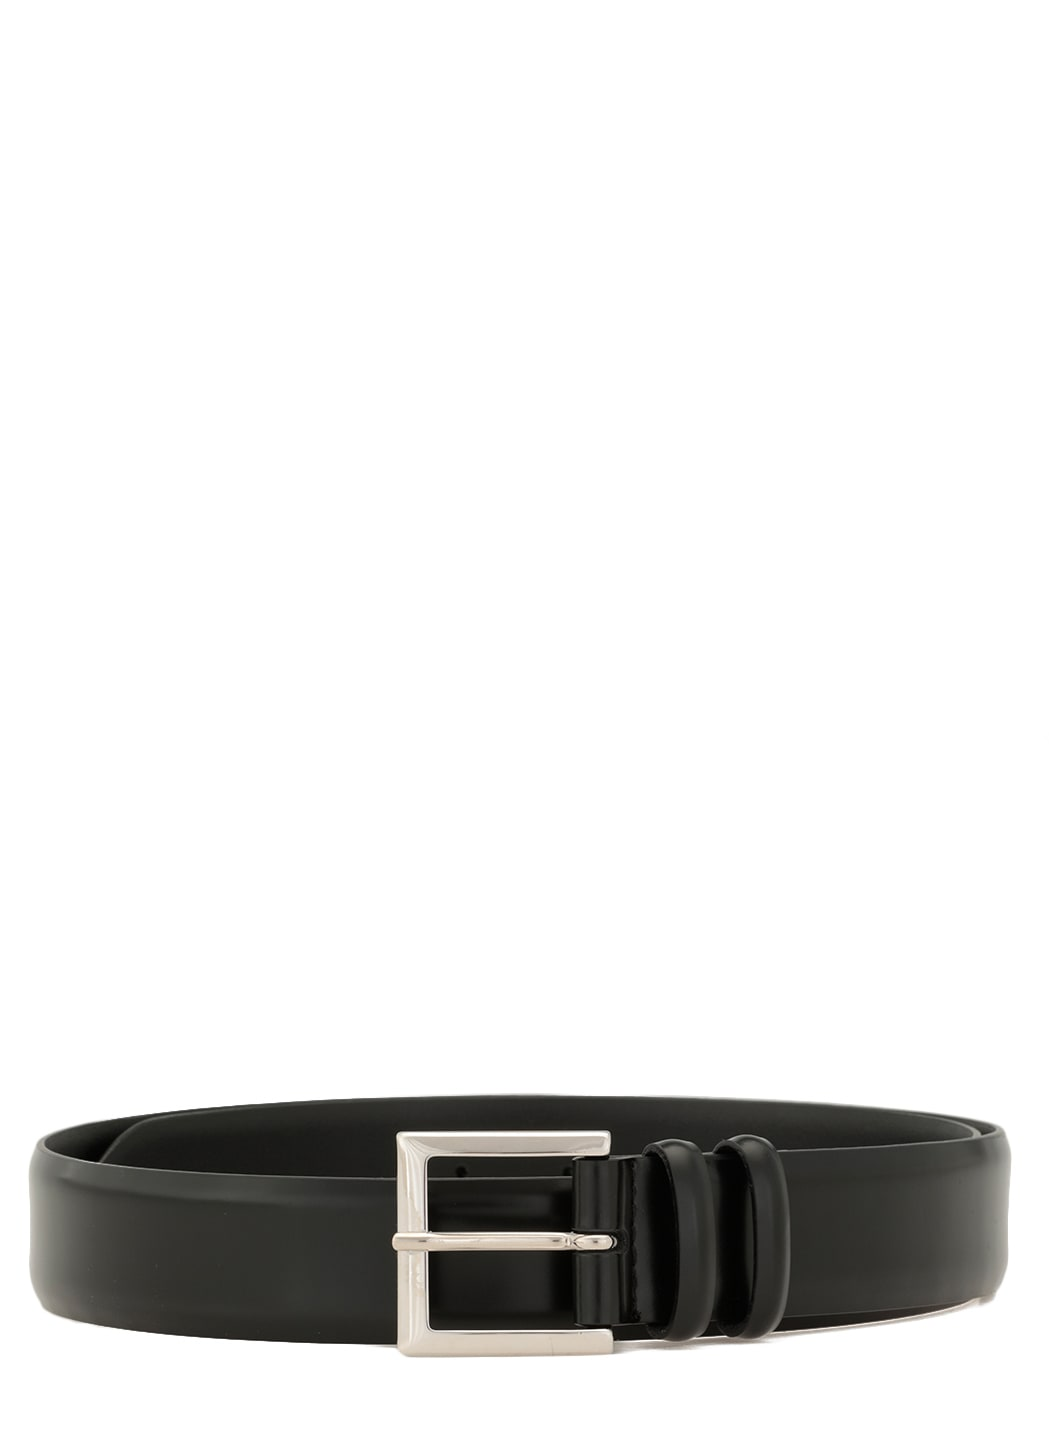 Orciani SMOOTH LEATHER BELT